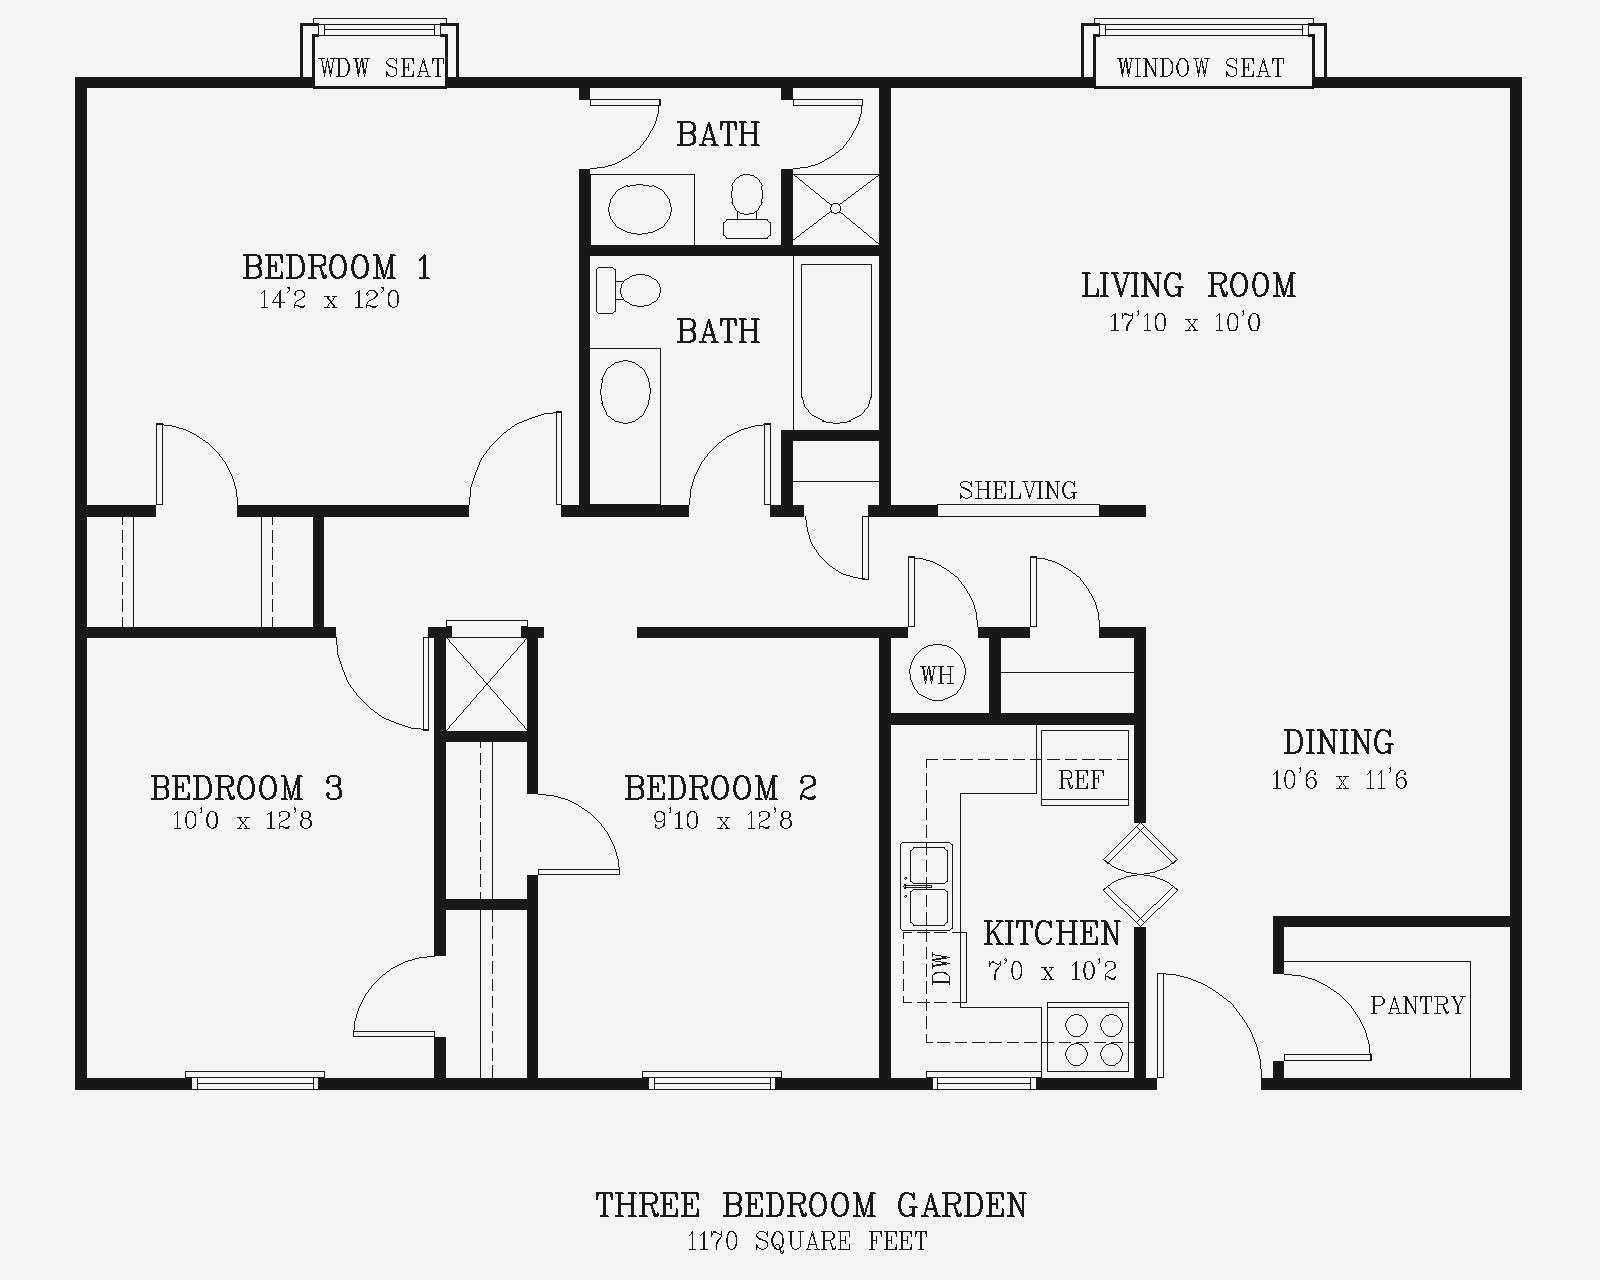 Best ideas about Average Master Bedroom Size . Save or Pin The Average Size Master Bedroom Inspirational Average Now.